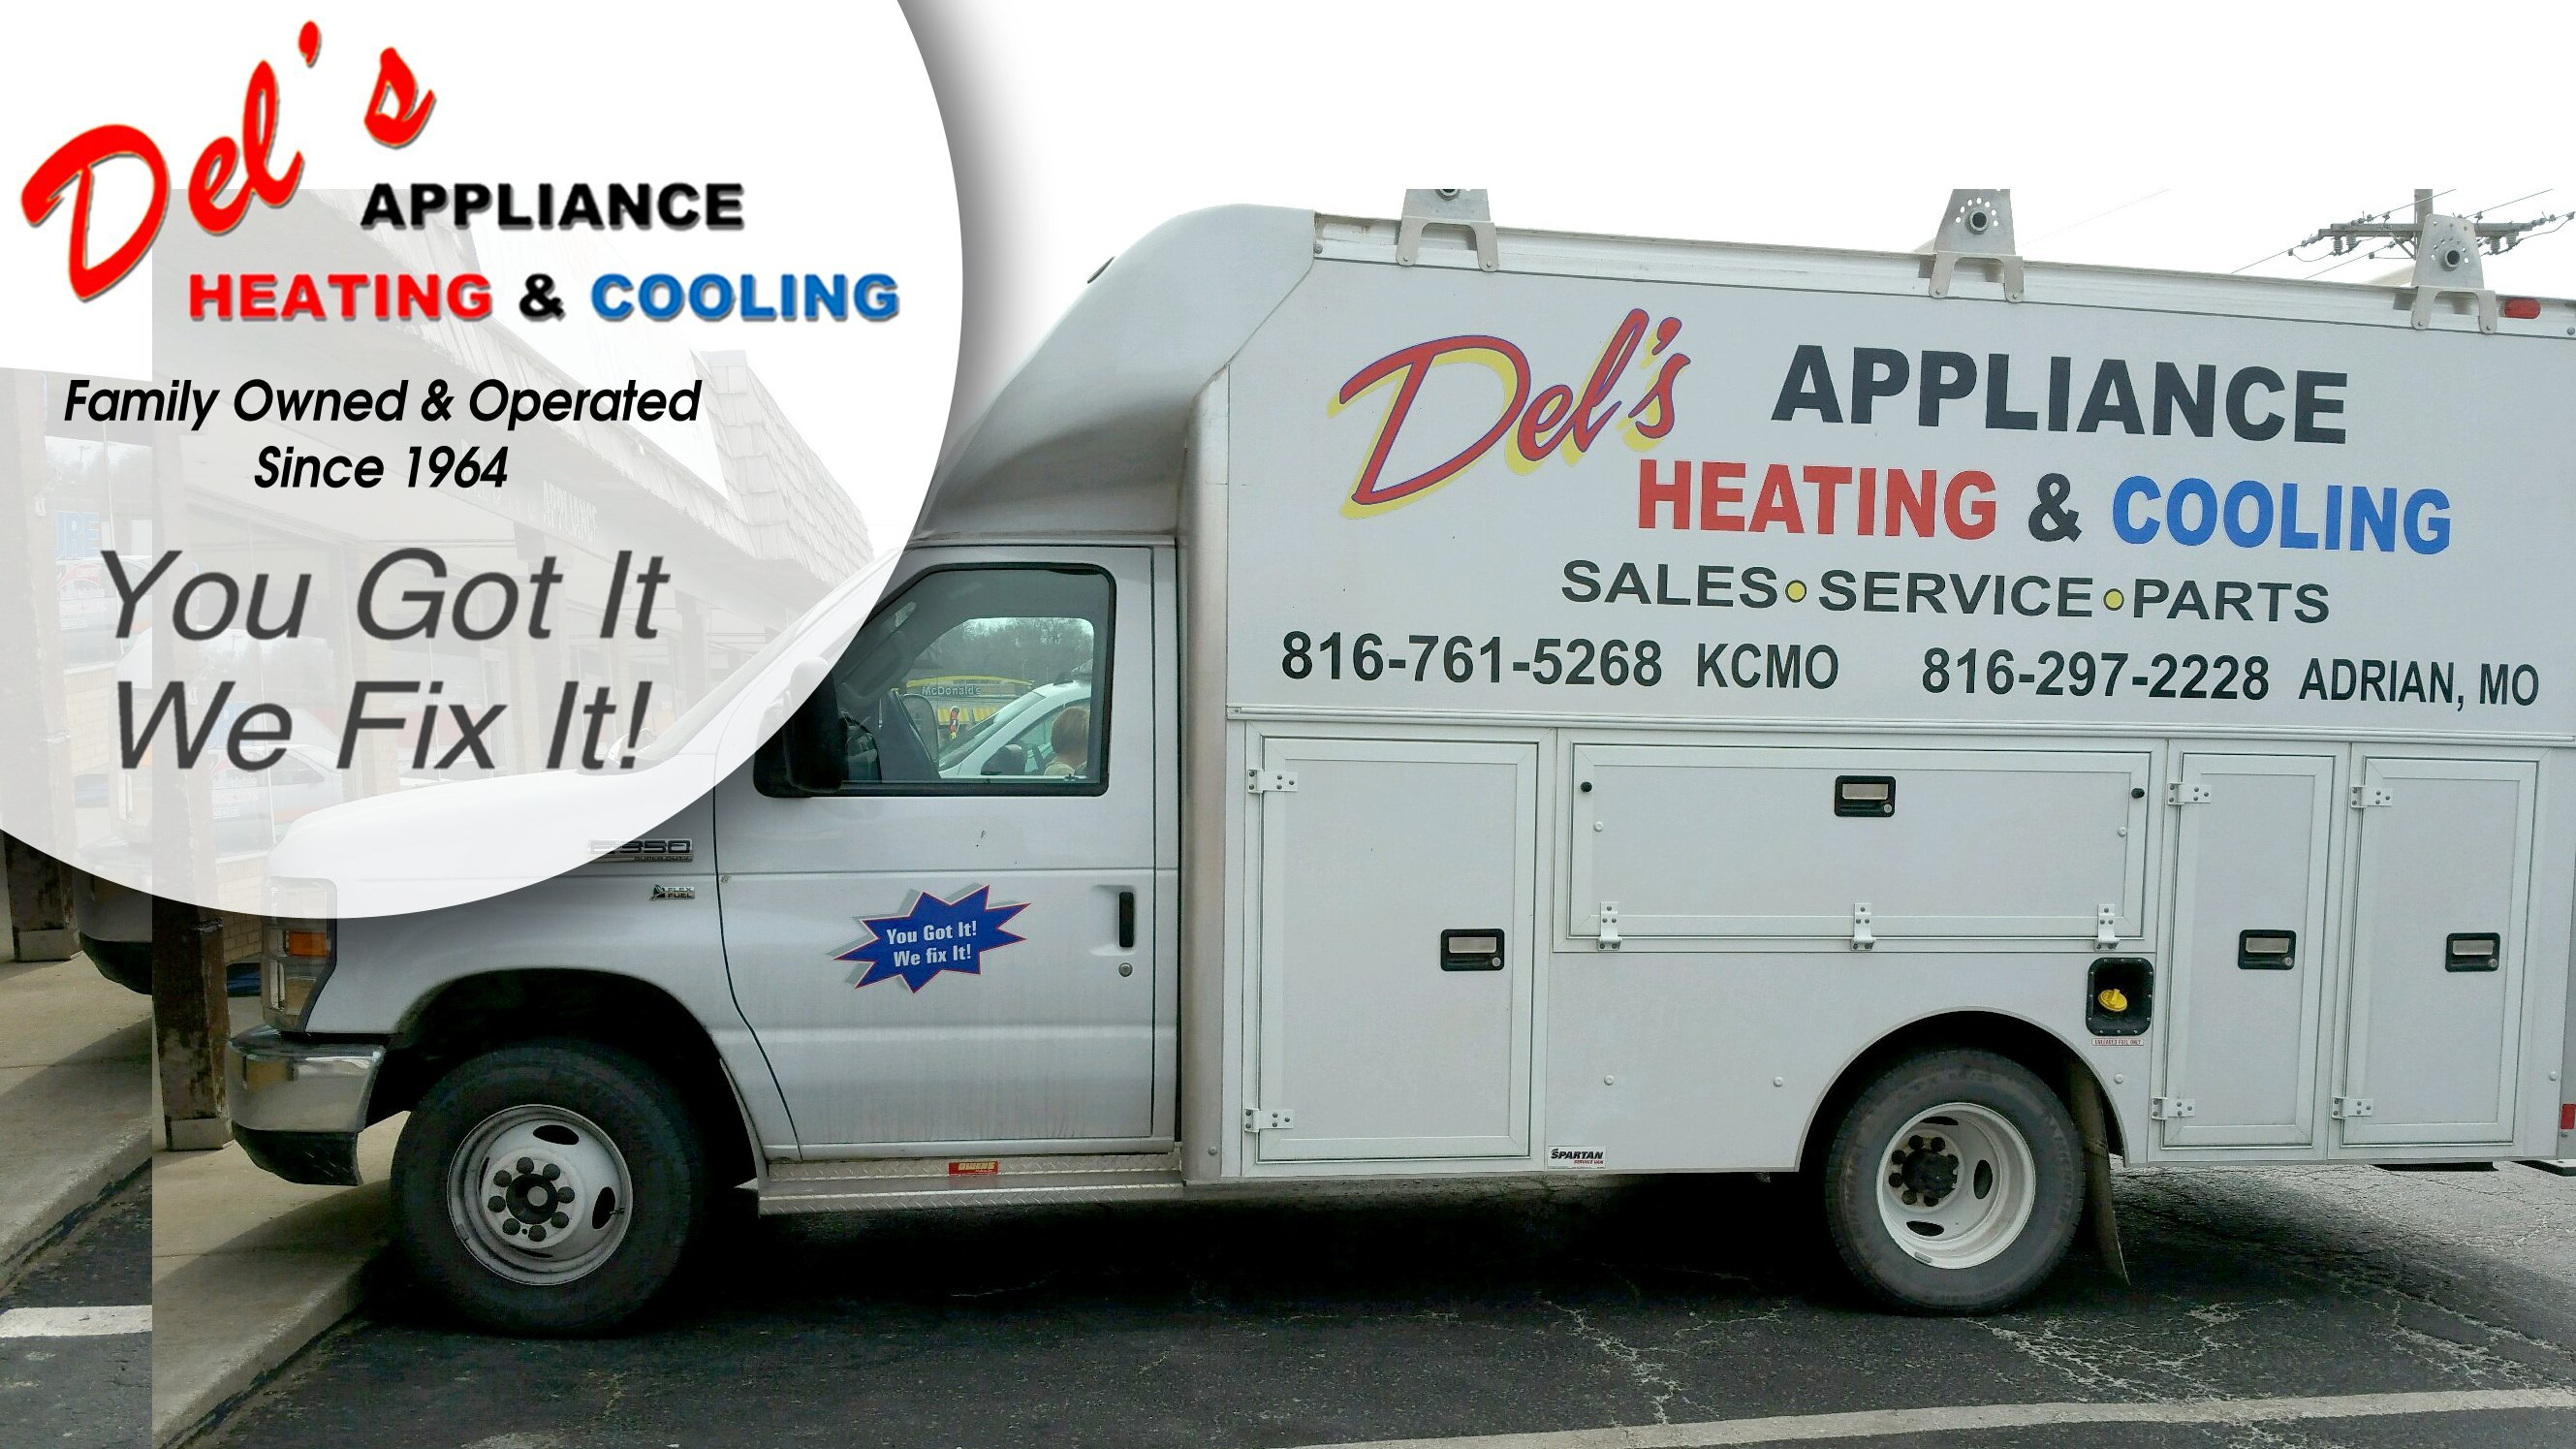 Del's Appliance Heating & Cooling Logo.  Family Owned & Operated Since 1964.  You Got It We Fix It! Del's service truck in front of store.